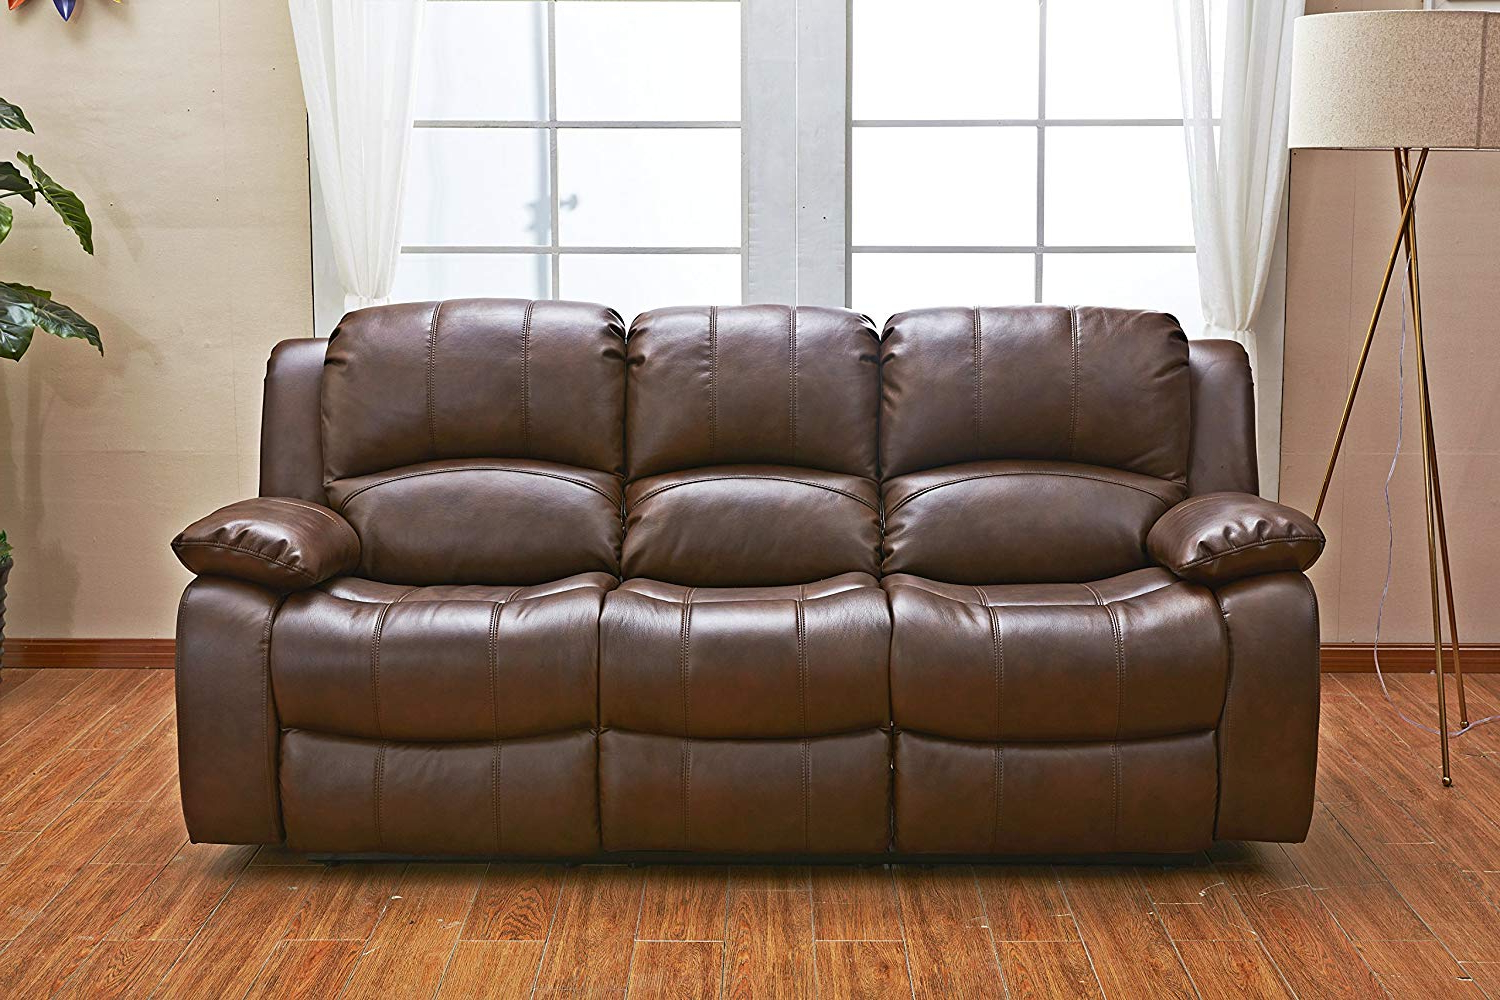 Most Current Betsy Furniture 3Pc Bonded Leather Recliner Set Living Throughout 3Pc Bonded Leather Upholstered Wooden Sectional Sofas Brown (View 21 of 25)